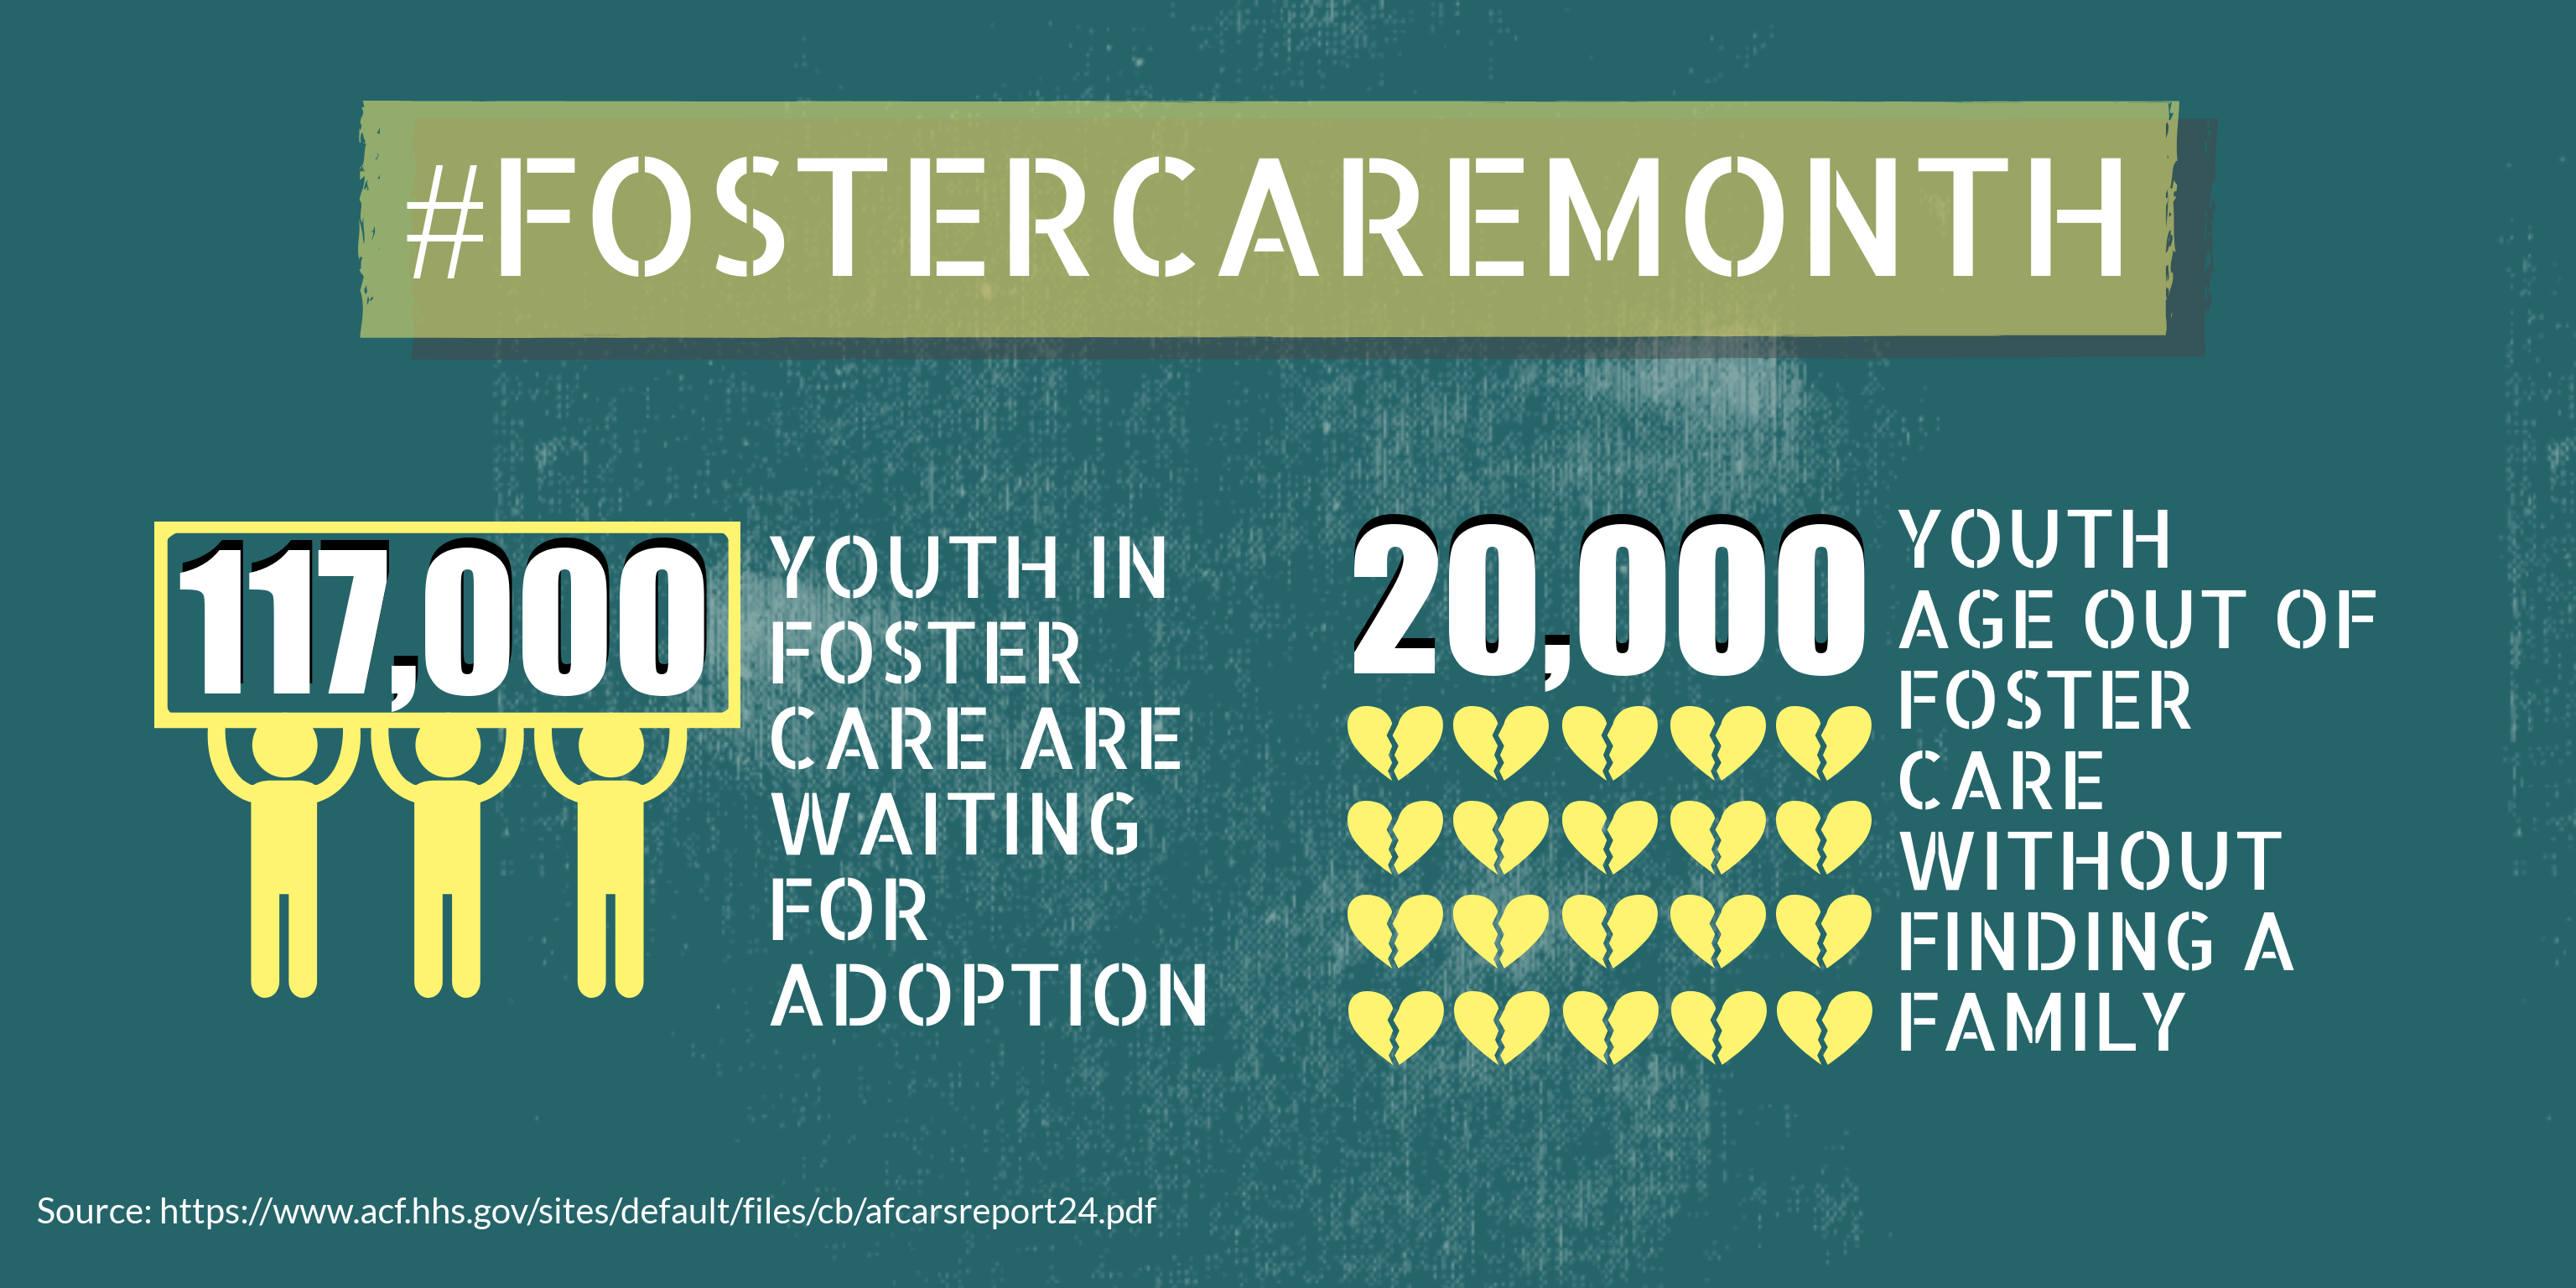 Infographics: 117,000 youth in foster care are waiting to be adopted. 20,000 will age out of foster care without a family.